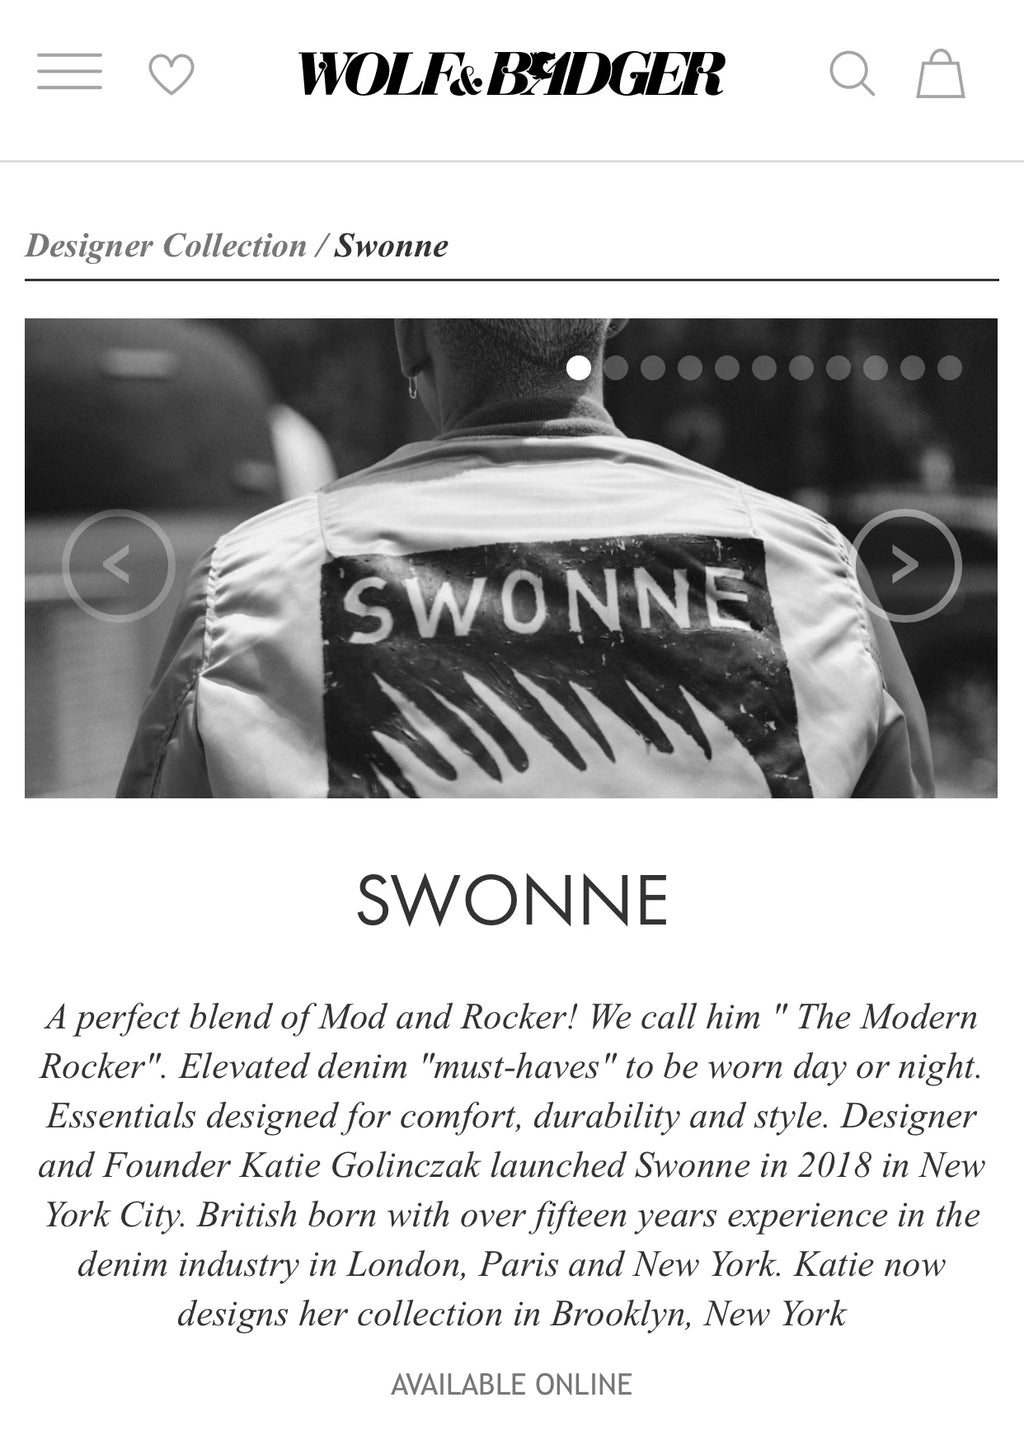 Swonne Is Fully Stocked At Wolf And Badger